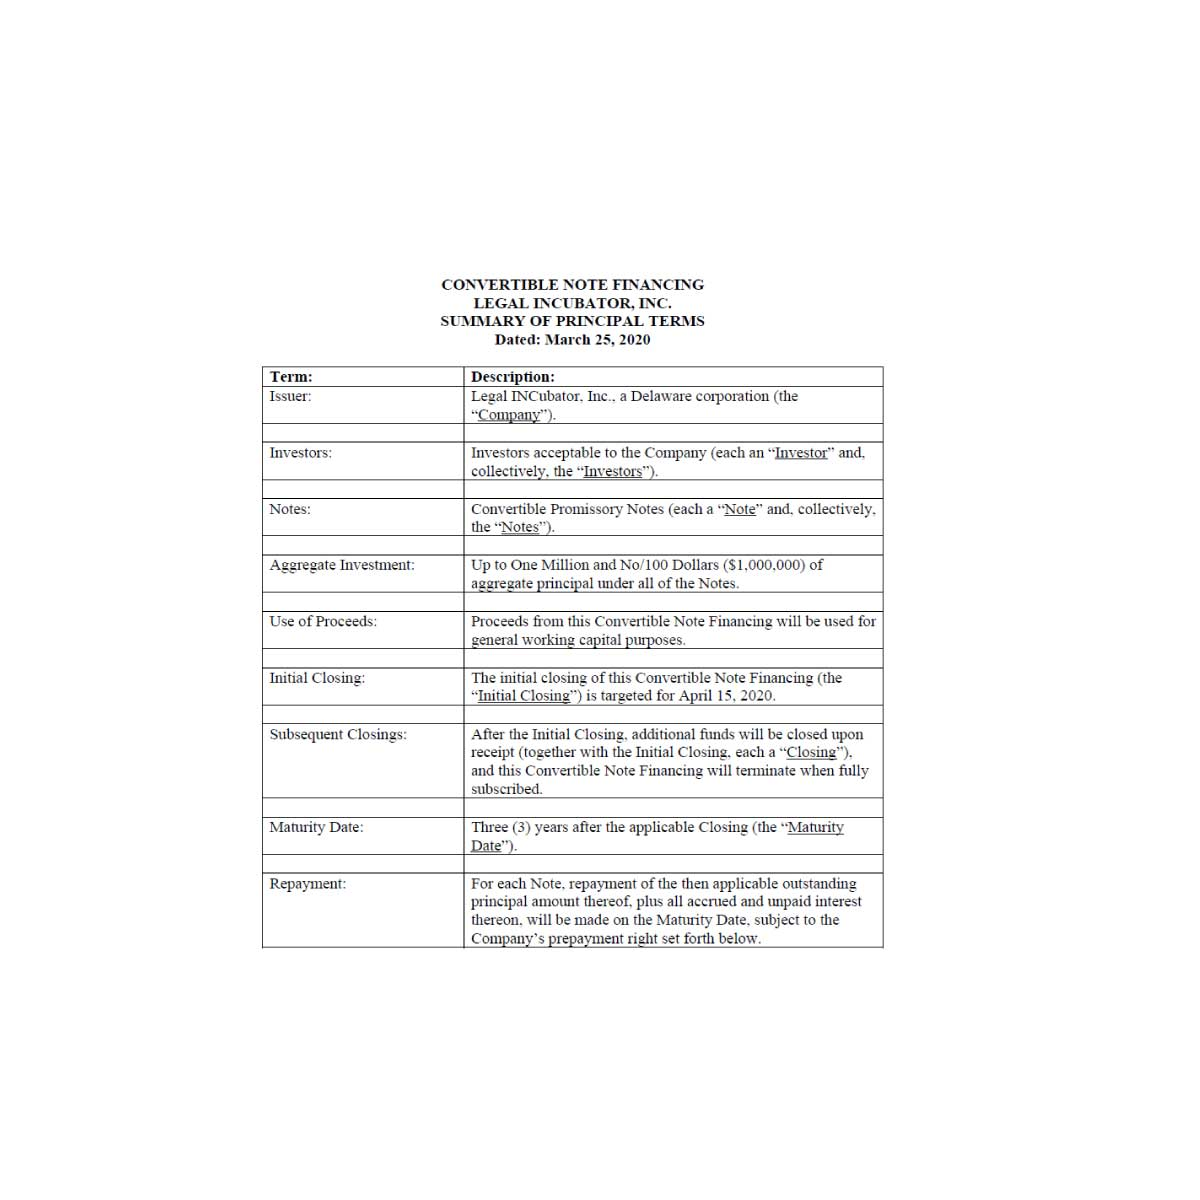 Convertible Note Term Sheet Explained California Counsel Group Convertible note term sheet template